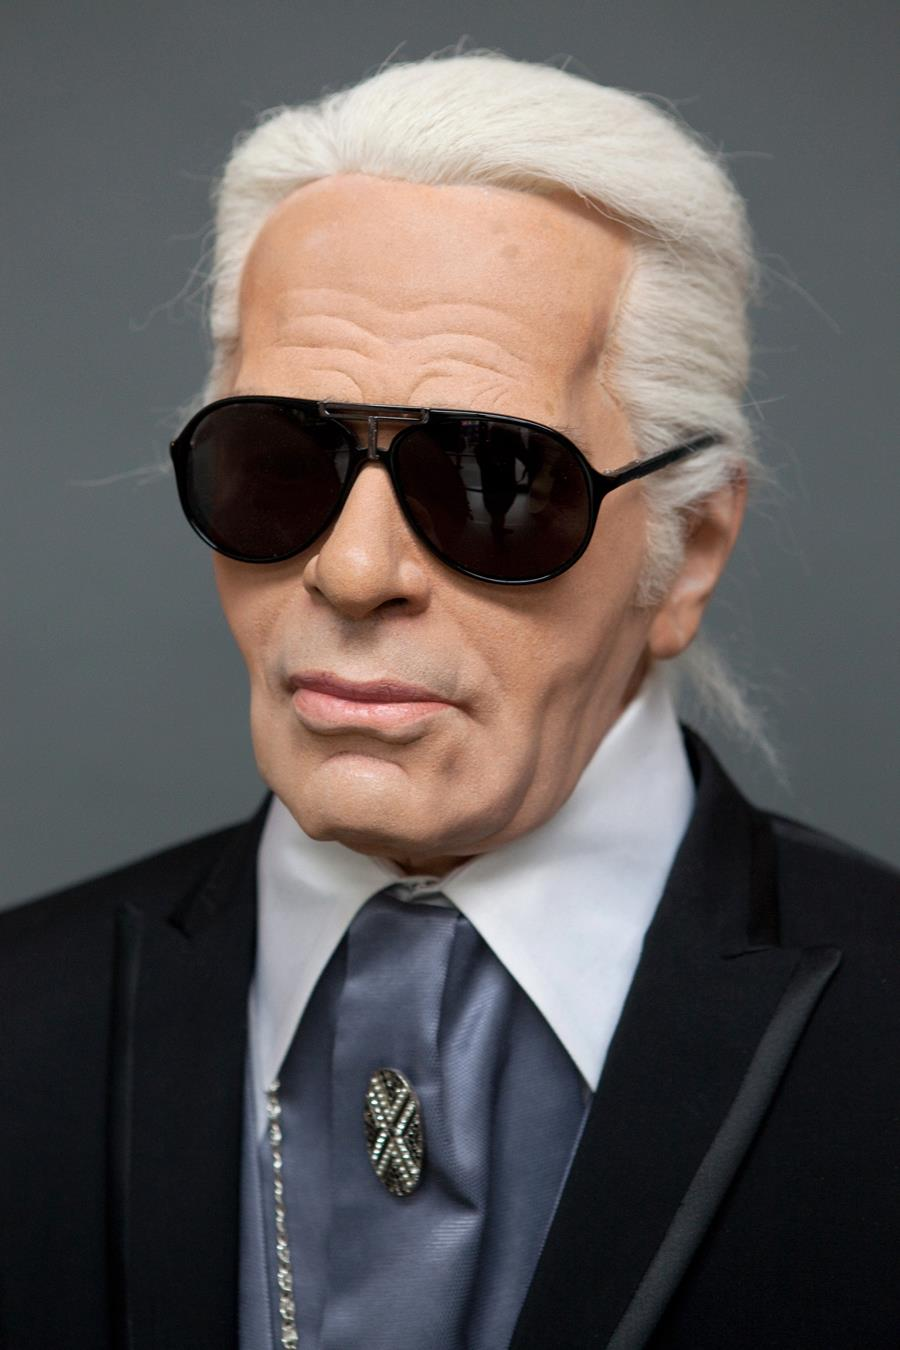 Karl Lagerfeld Net Worth